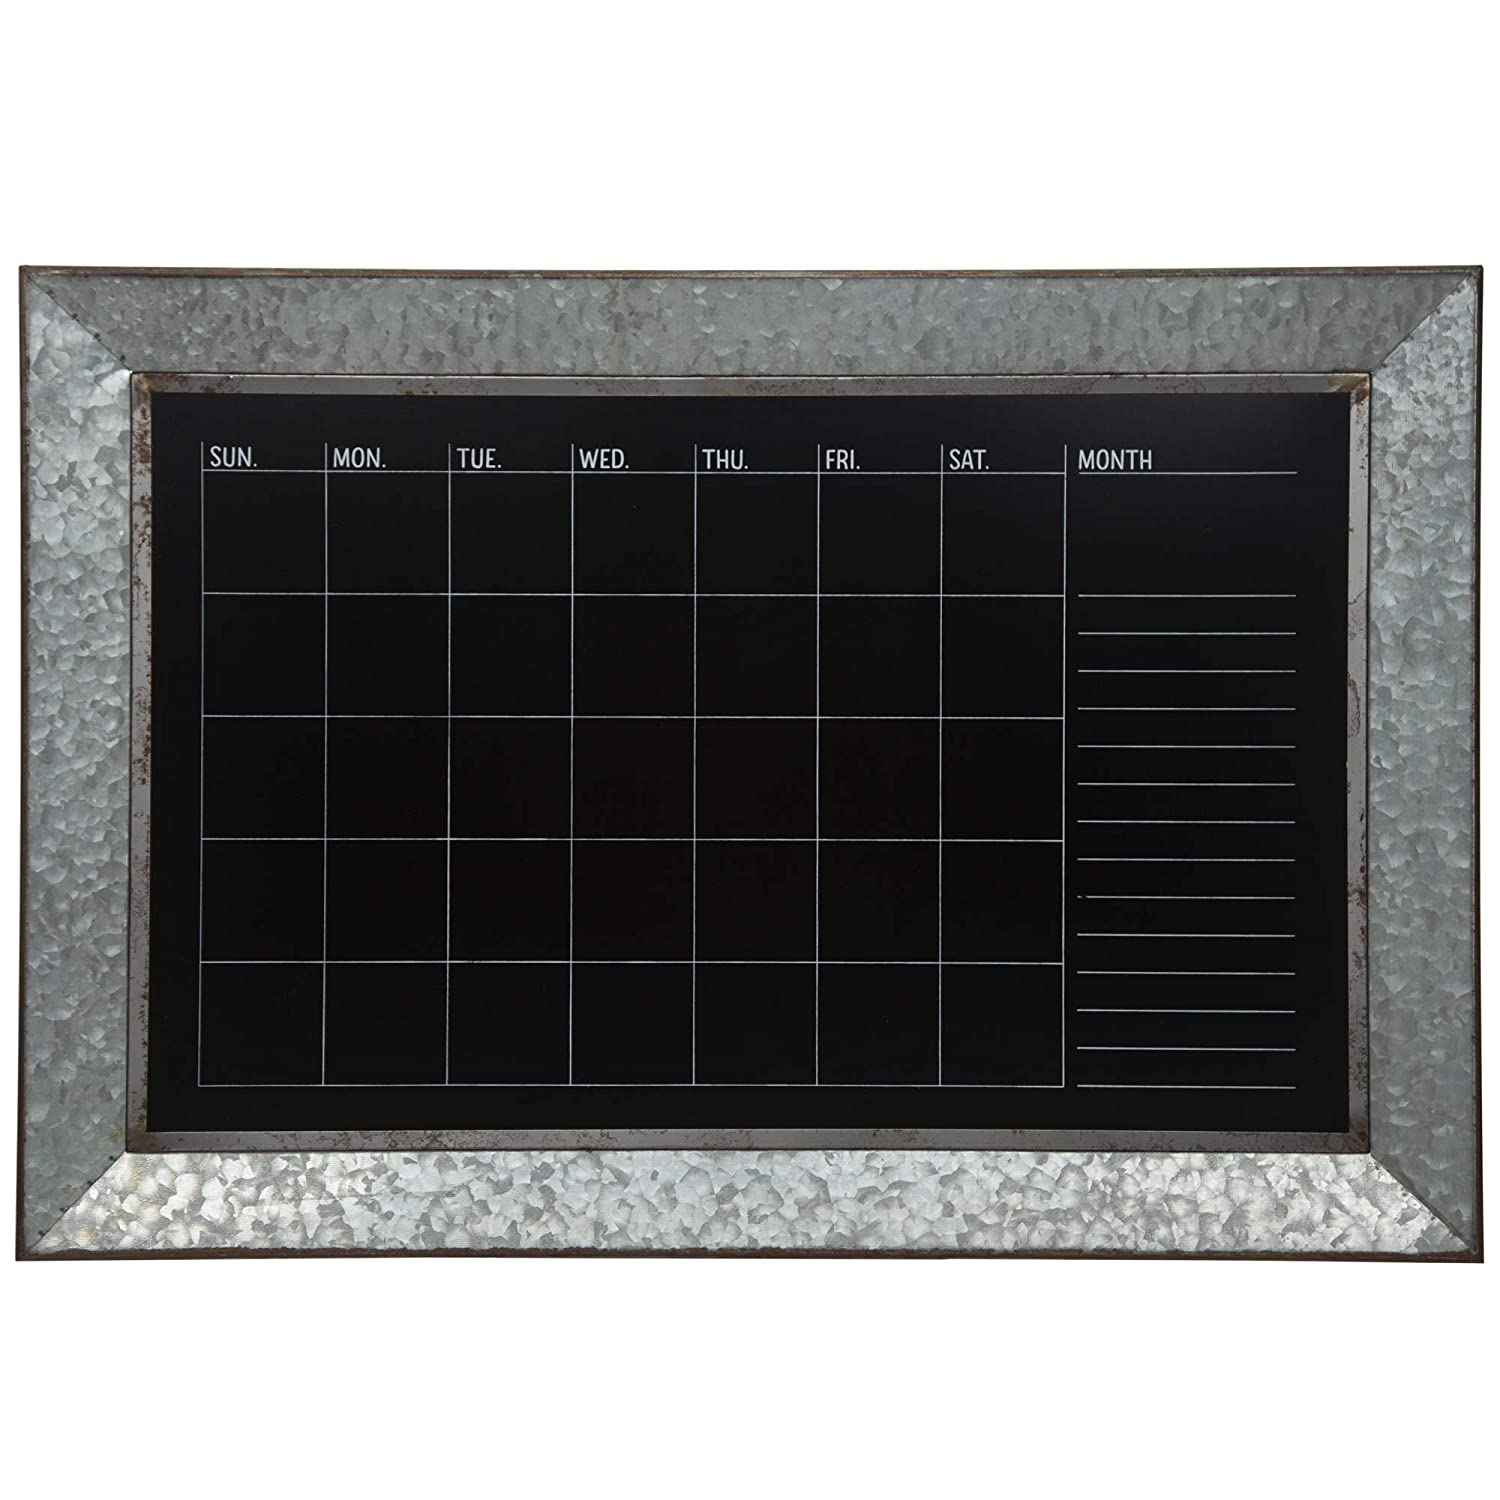 Everly Hart Collection Rustic Galvanized Metal Framed Mount Chalkboard Calendar Décor or Wall Art, Silver